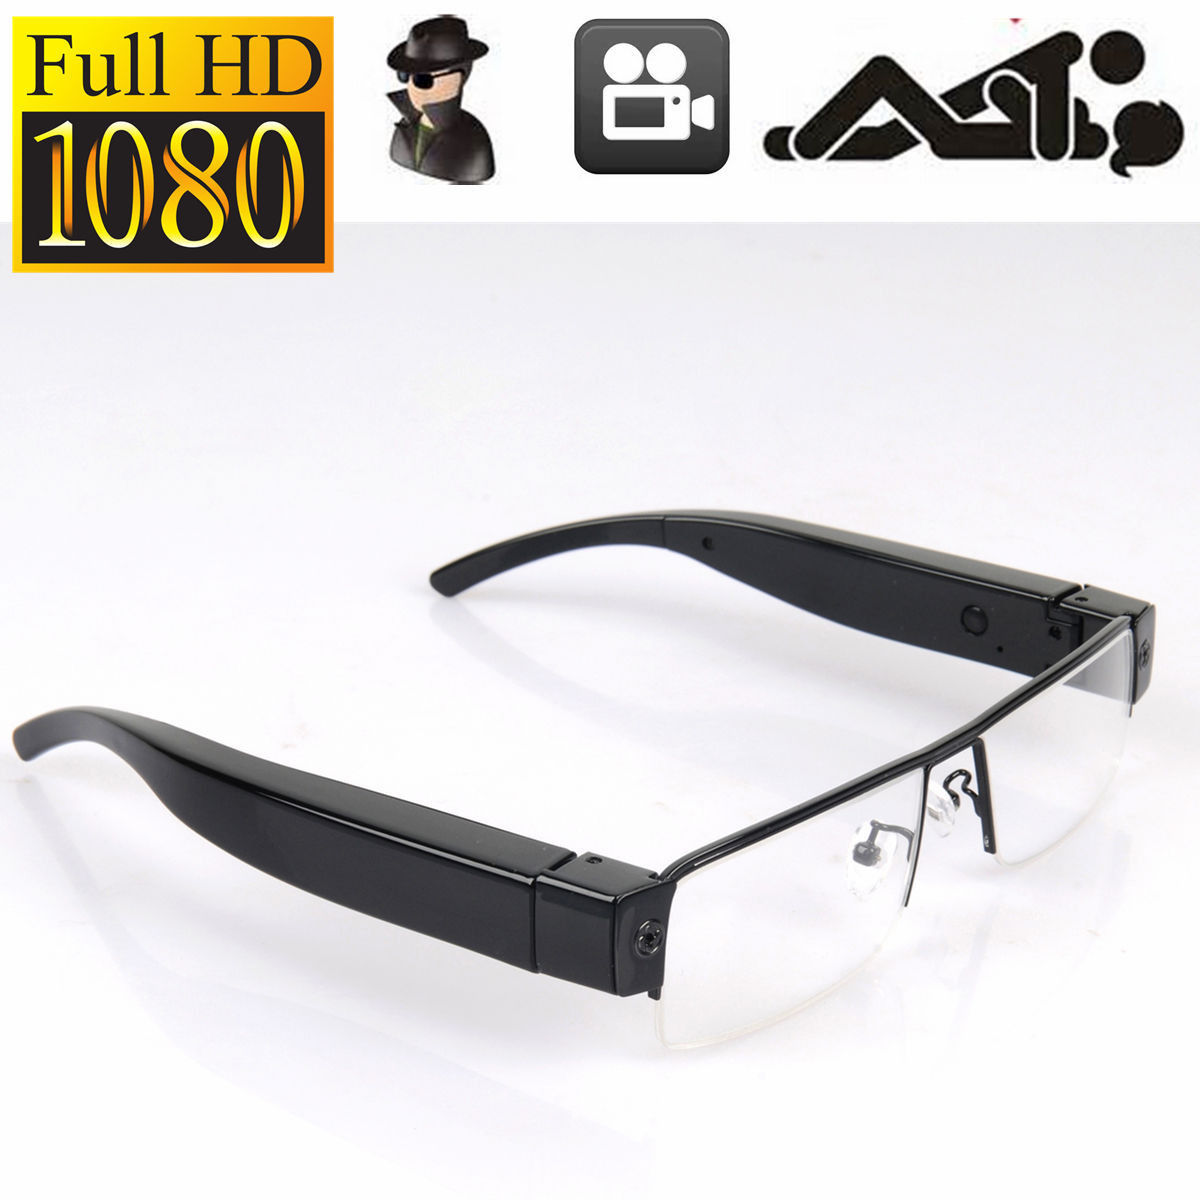 23a9f95947 Spy Glasses Full HD 1080P Spy Hidden Camera Security Eyewear Cam DVR Video  Recorder Mini Eyeware Sunglasses Camera